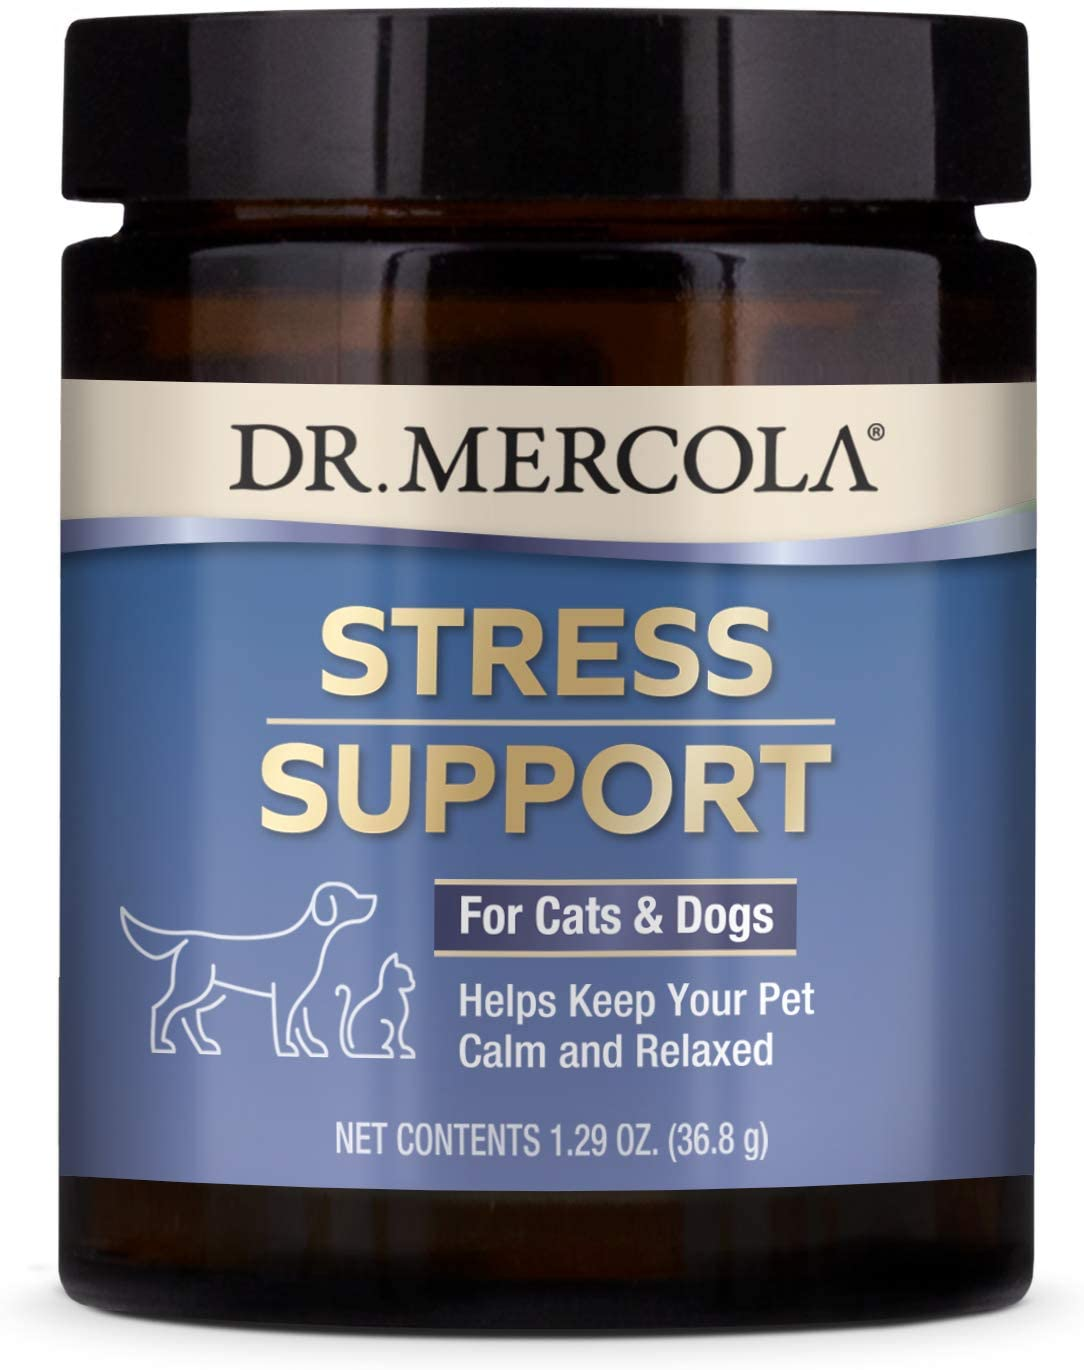 dr. Mercola Stress Support with Adaptogens for dogs including ashwagandha